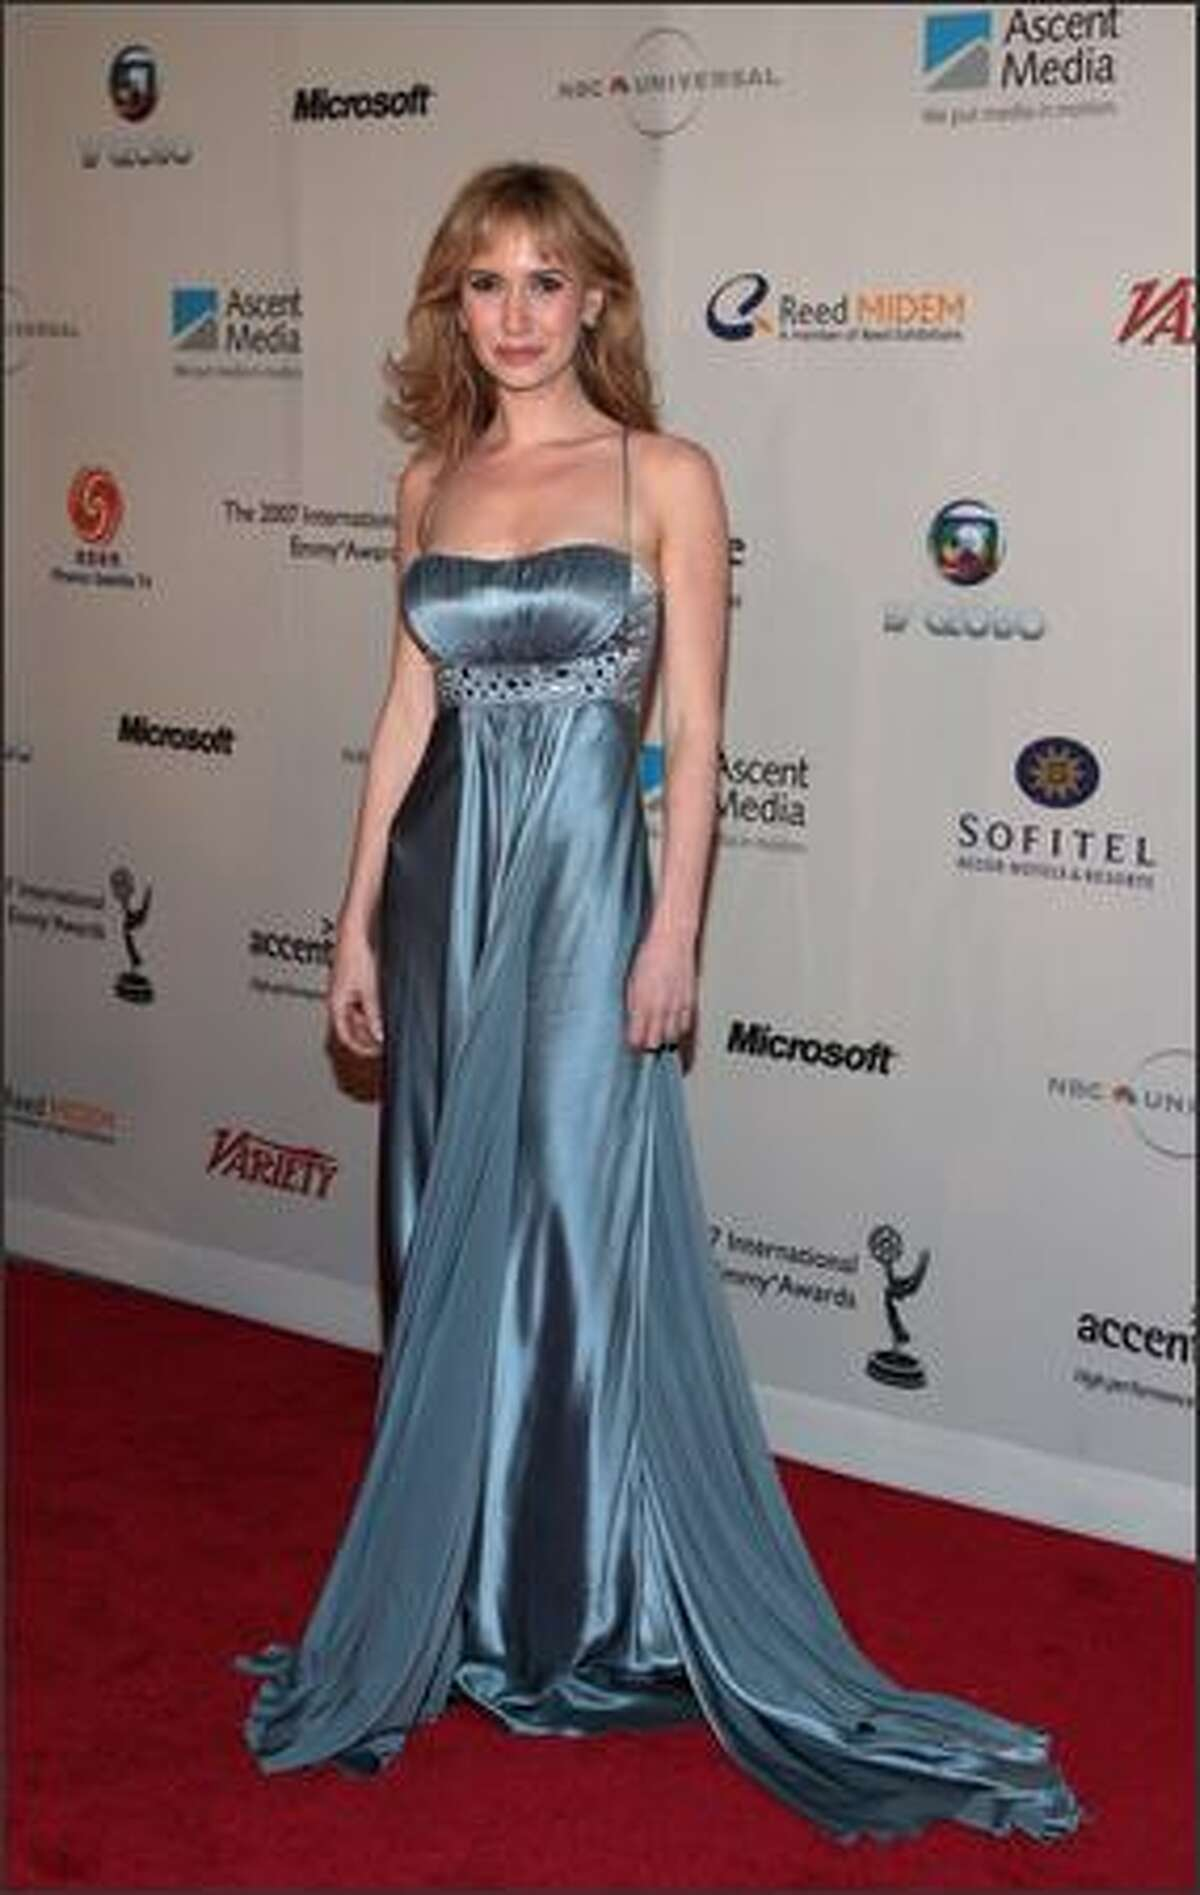 Ashley Jones attends the 35th International Emmy Awards Gala at the New York Hilton on Monday in New York City.